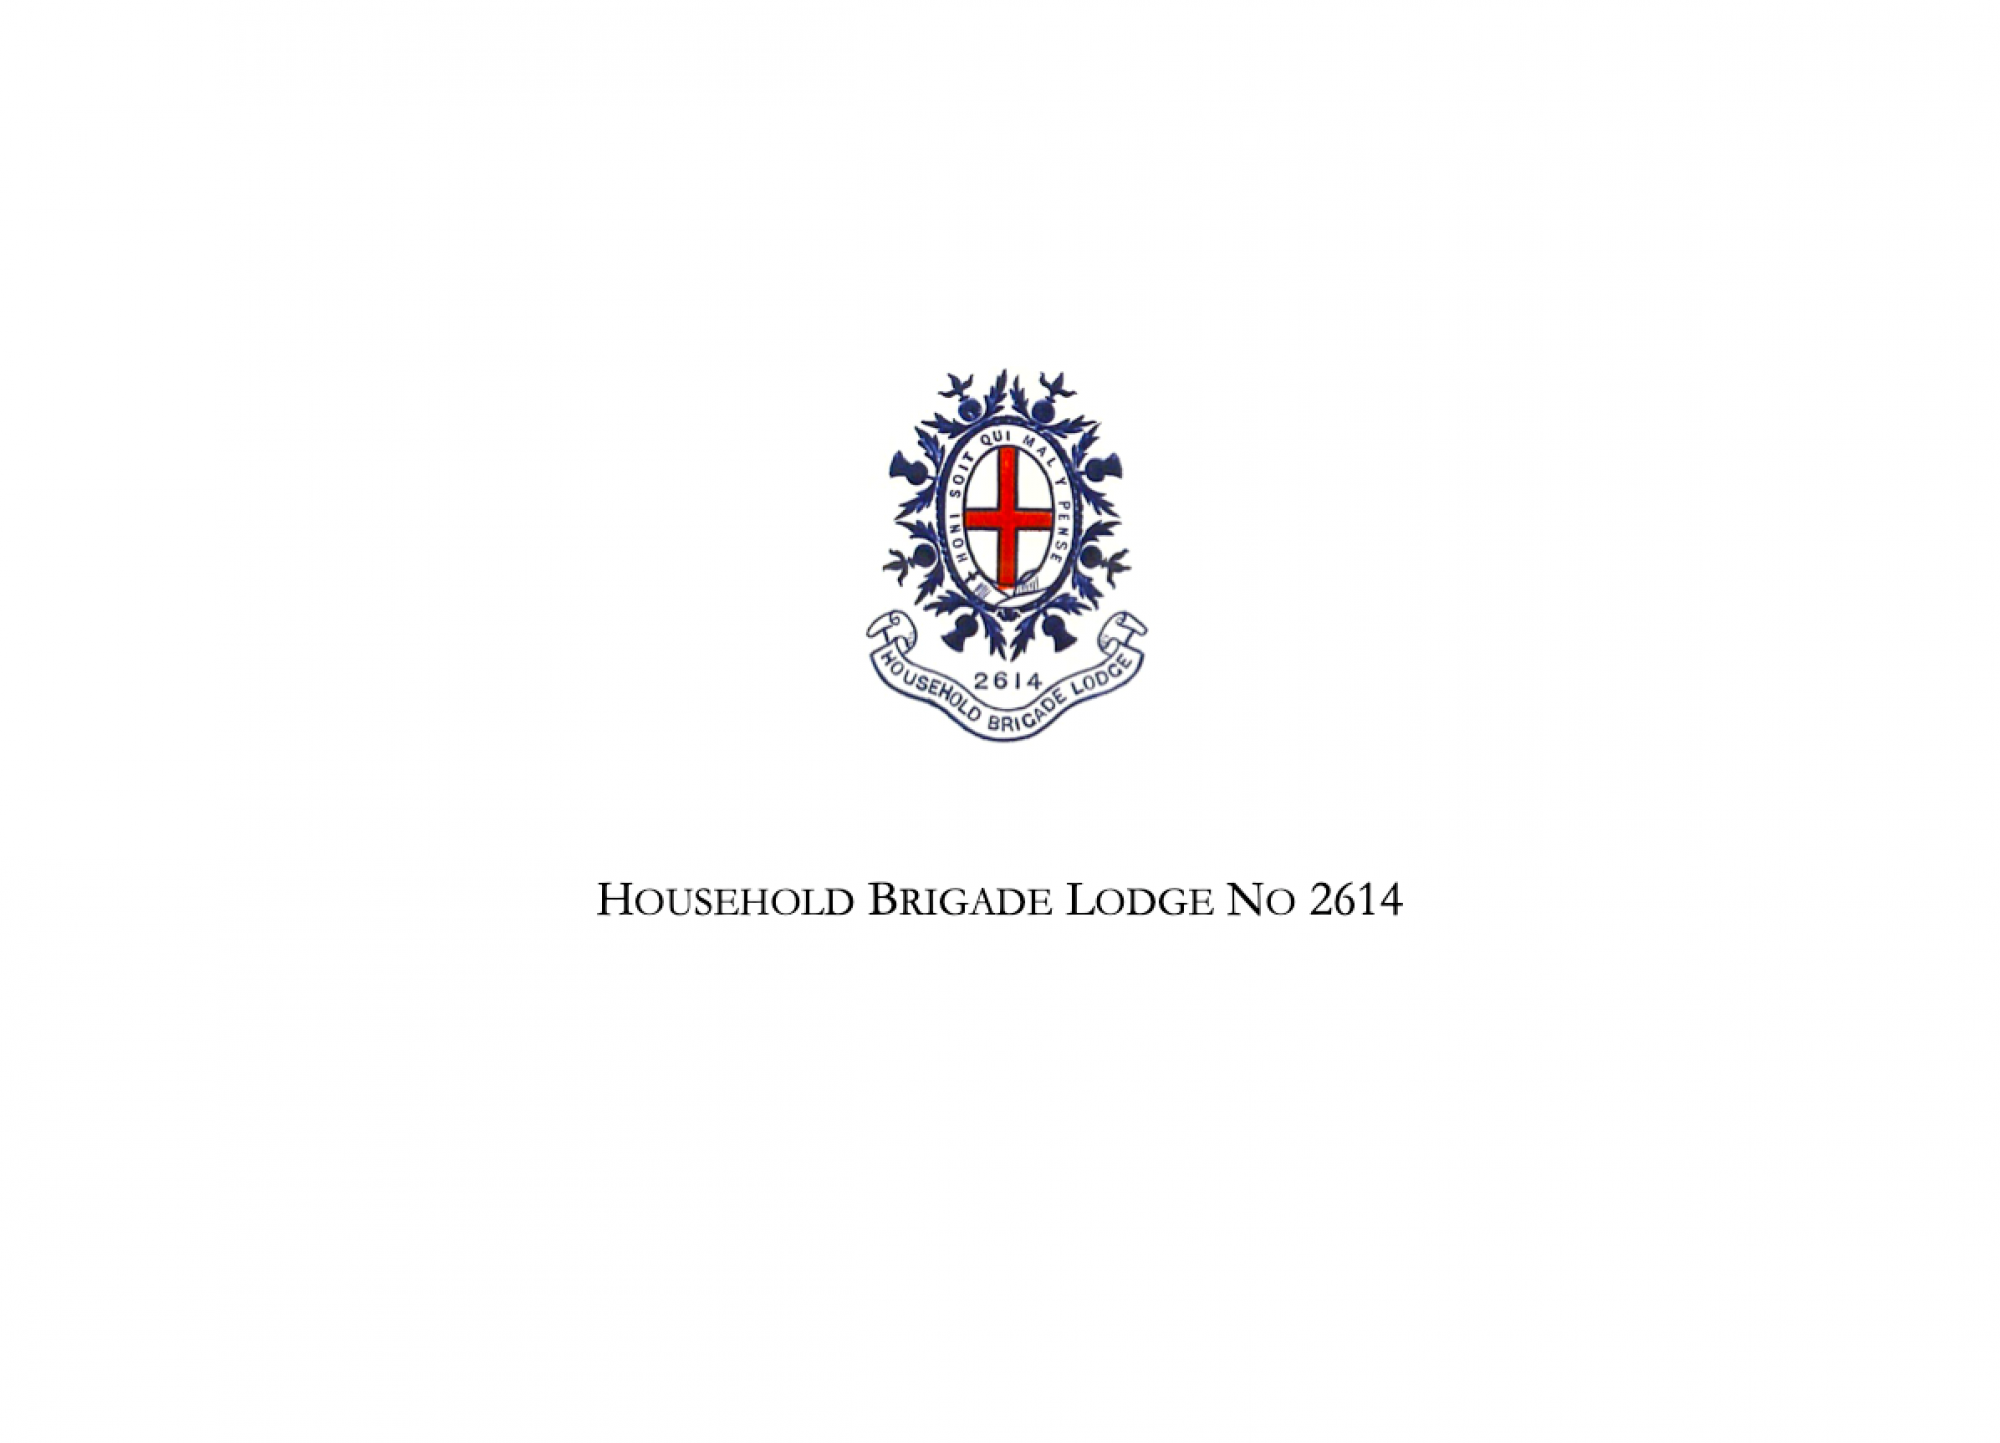 Household Brigade Lodge No 2614